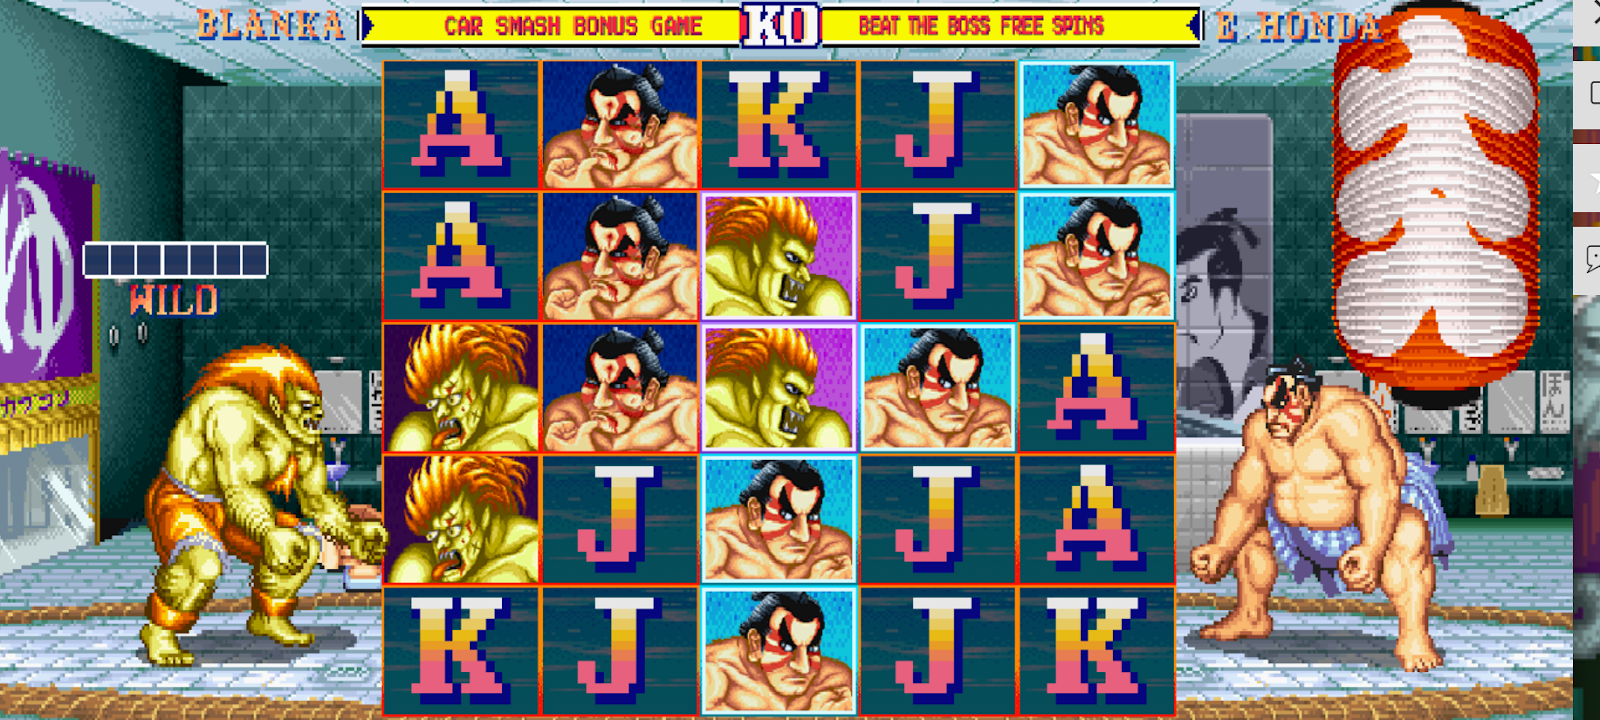 Street Fighter II: The World Warrior Slot lets you pick a character from the arcade game and battle an opponent